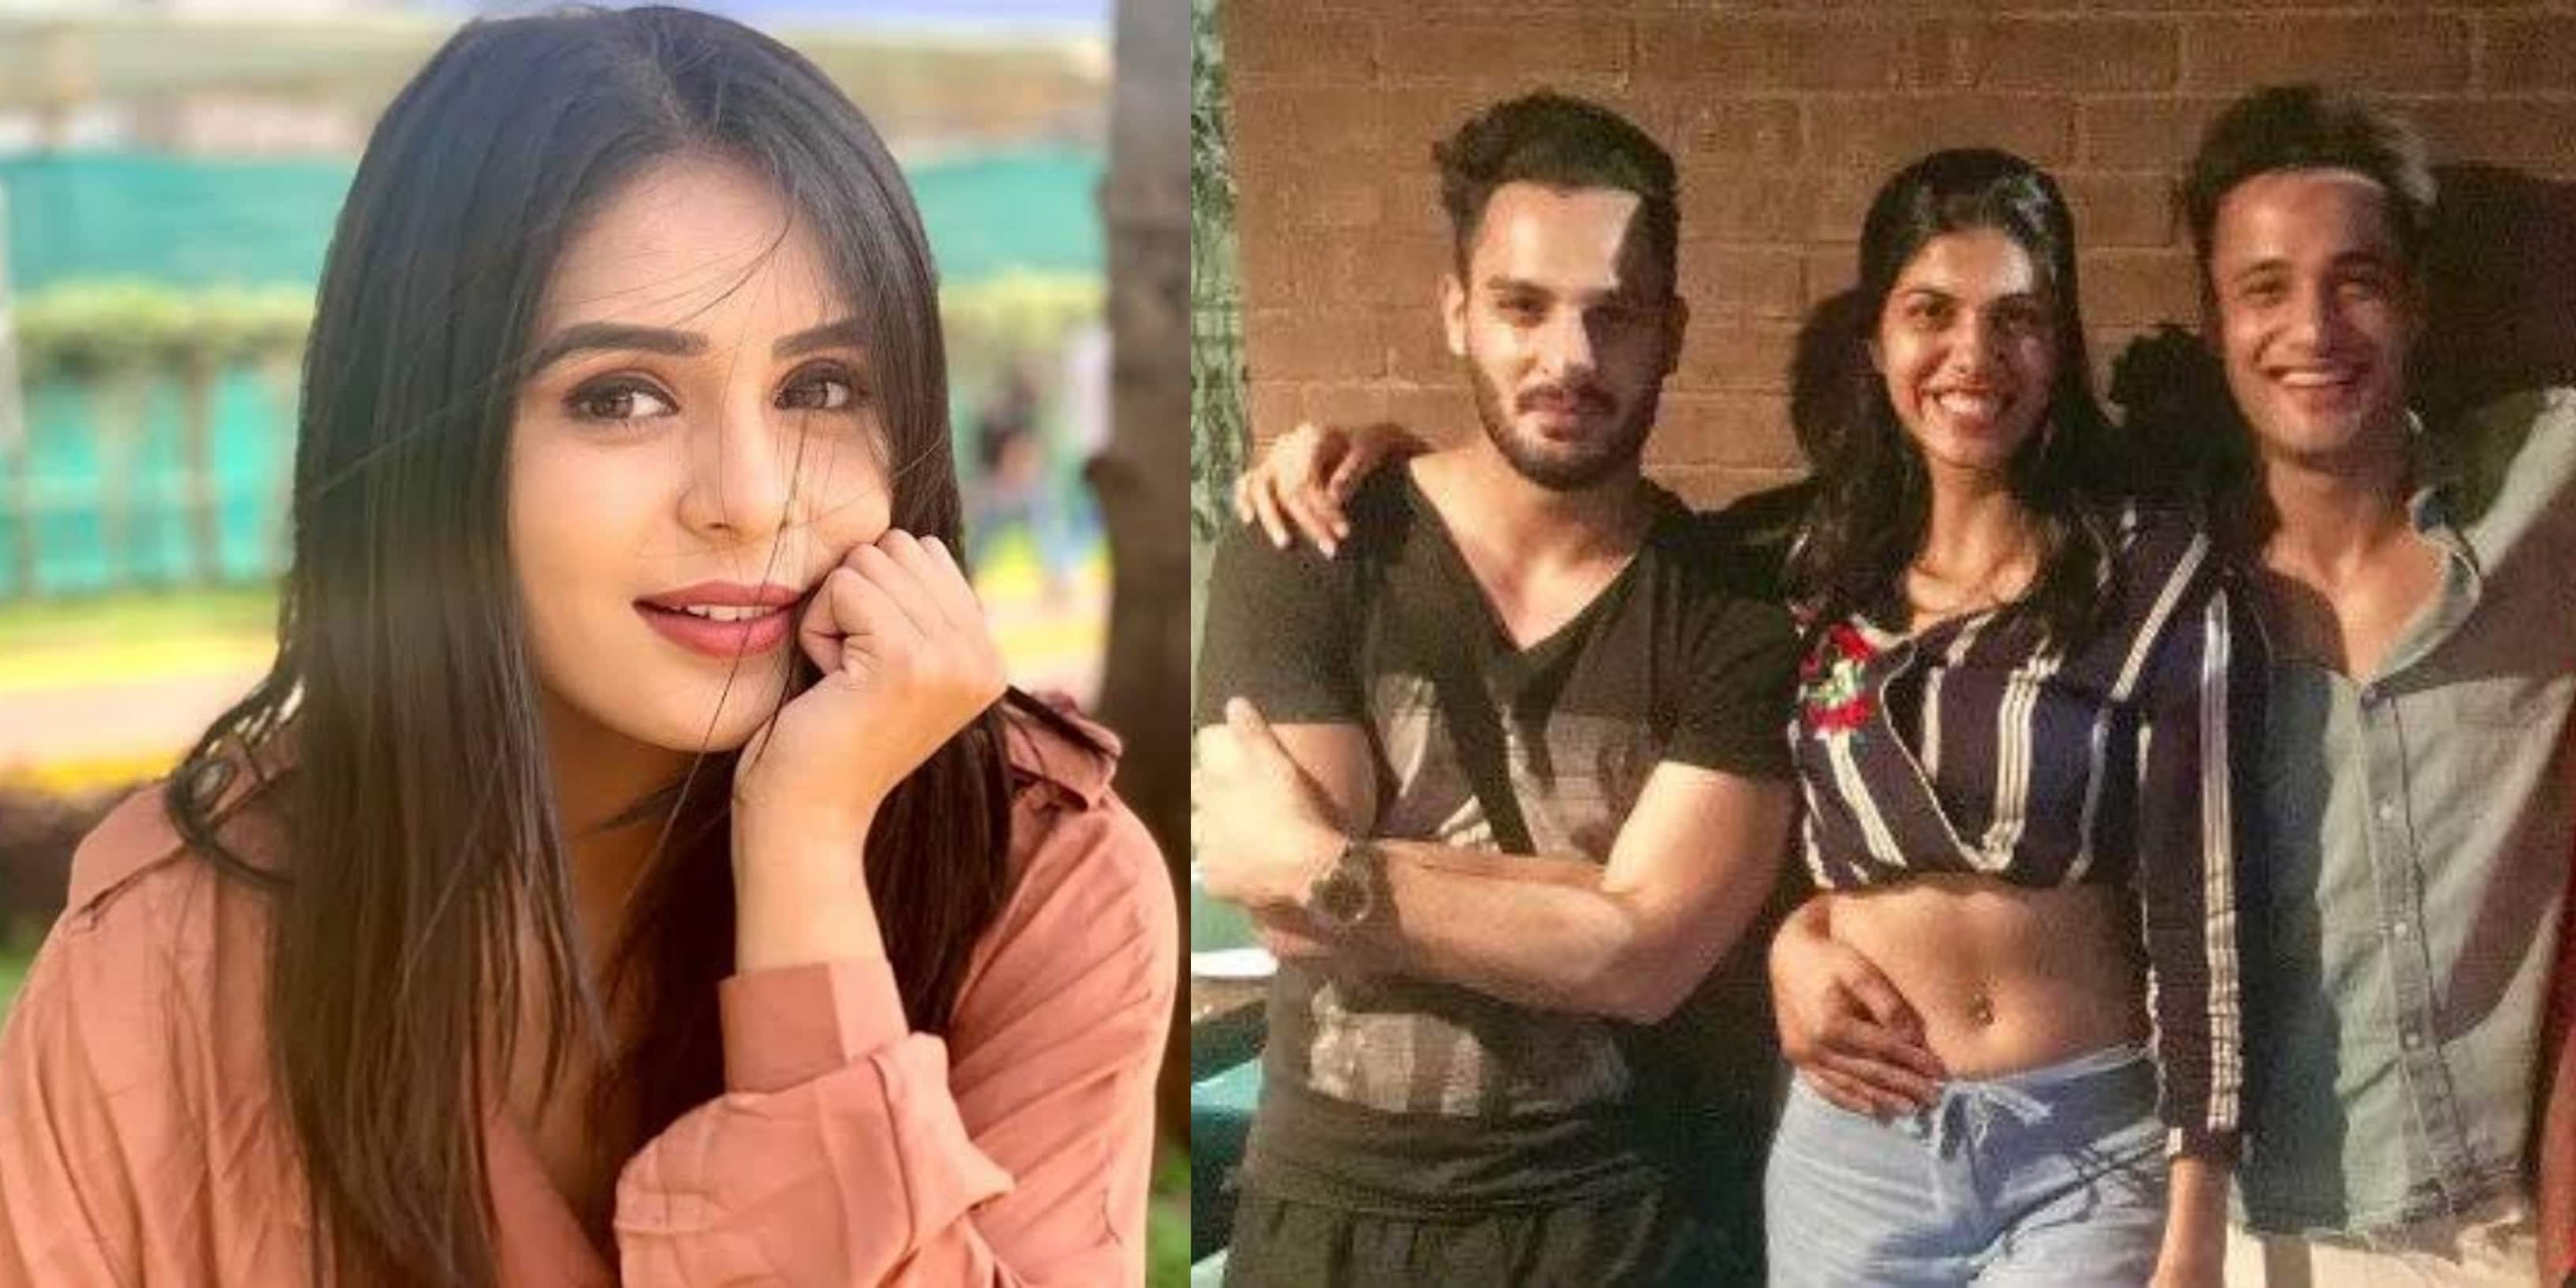 Bigg Boss 13: Umar Riaz's Close Friend Reveals Asim Was In A Live-In Relationship With GF Shruti Before Entering The Show